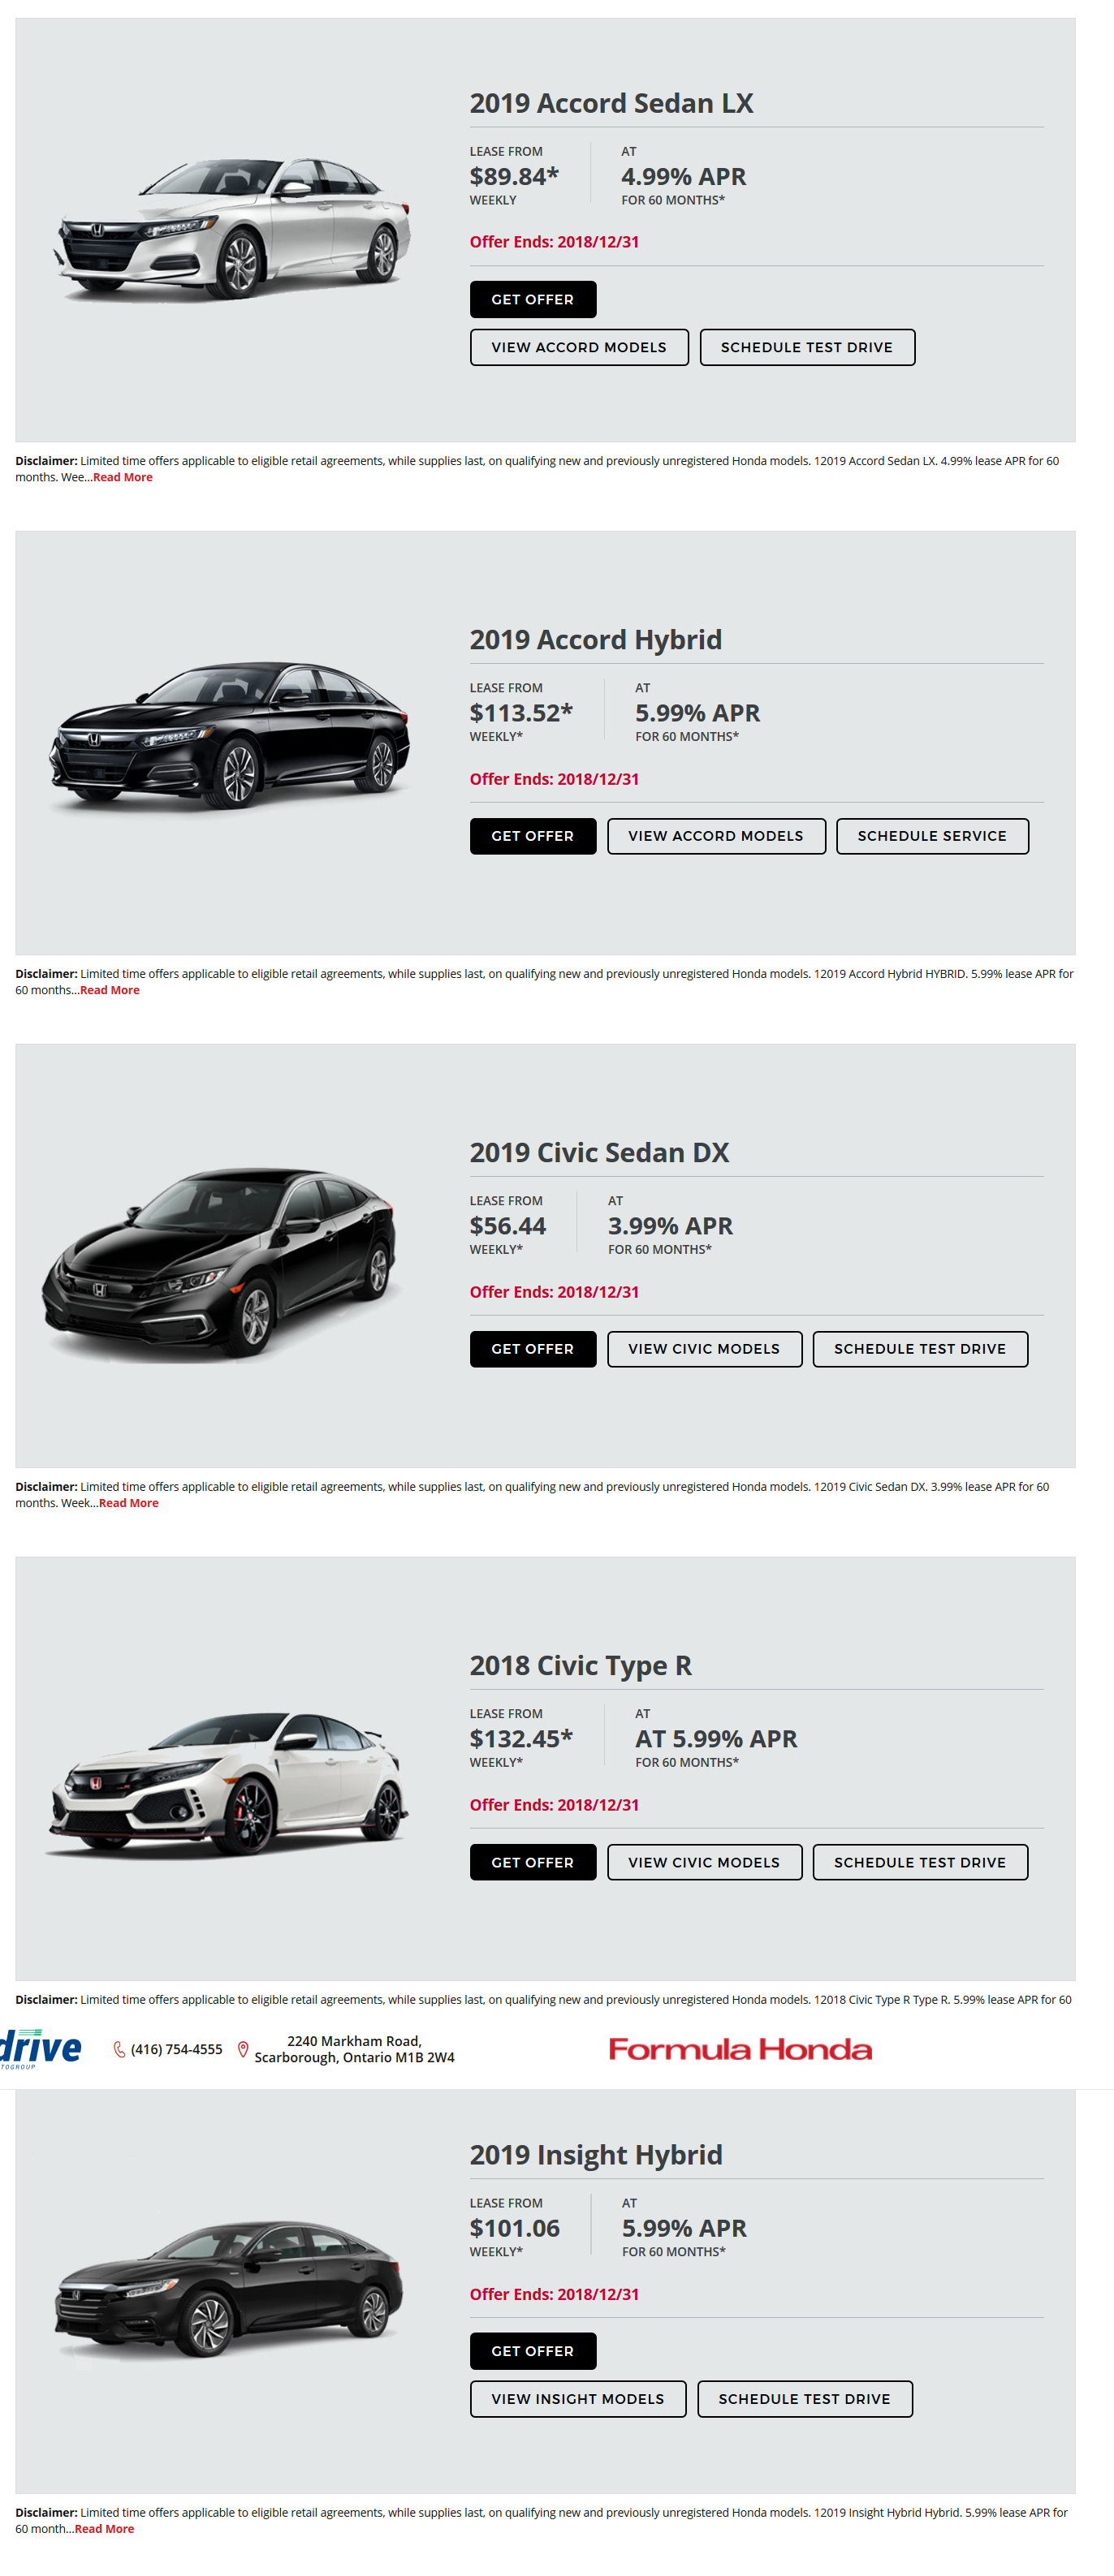 Screenshot_2018-12-05 Toronto Honda incentives Formula Honda Toronto Honda Dealer ON .png